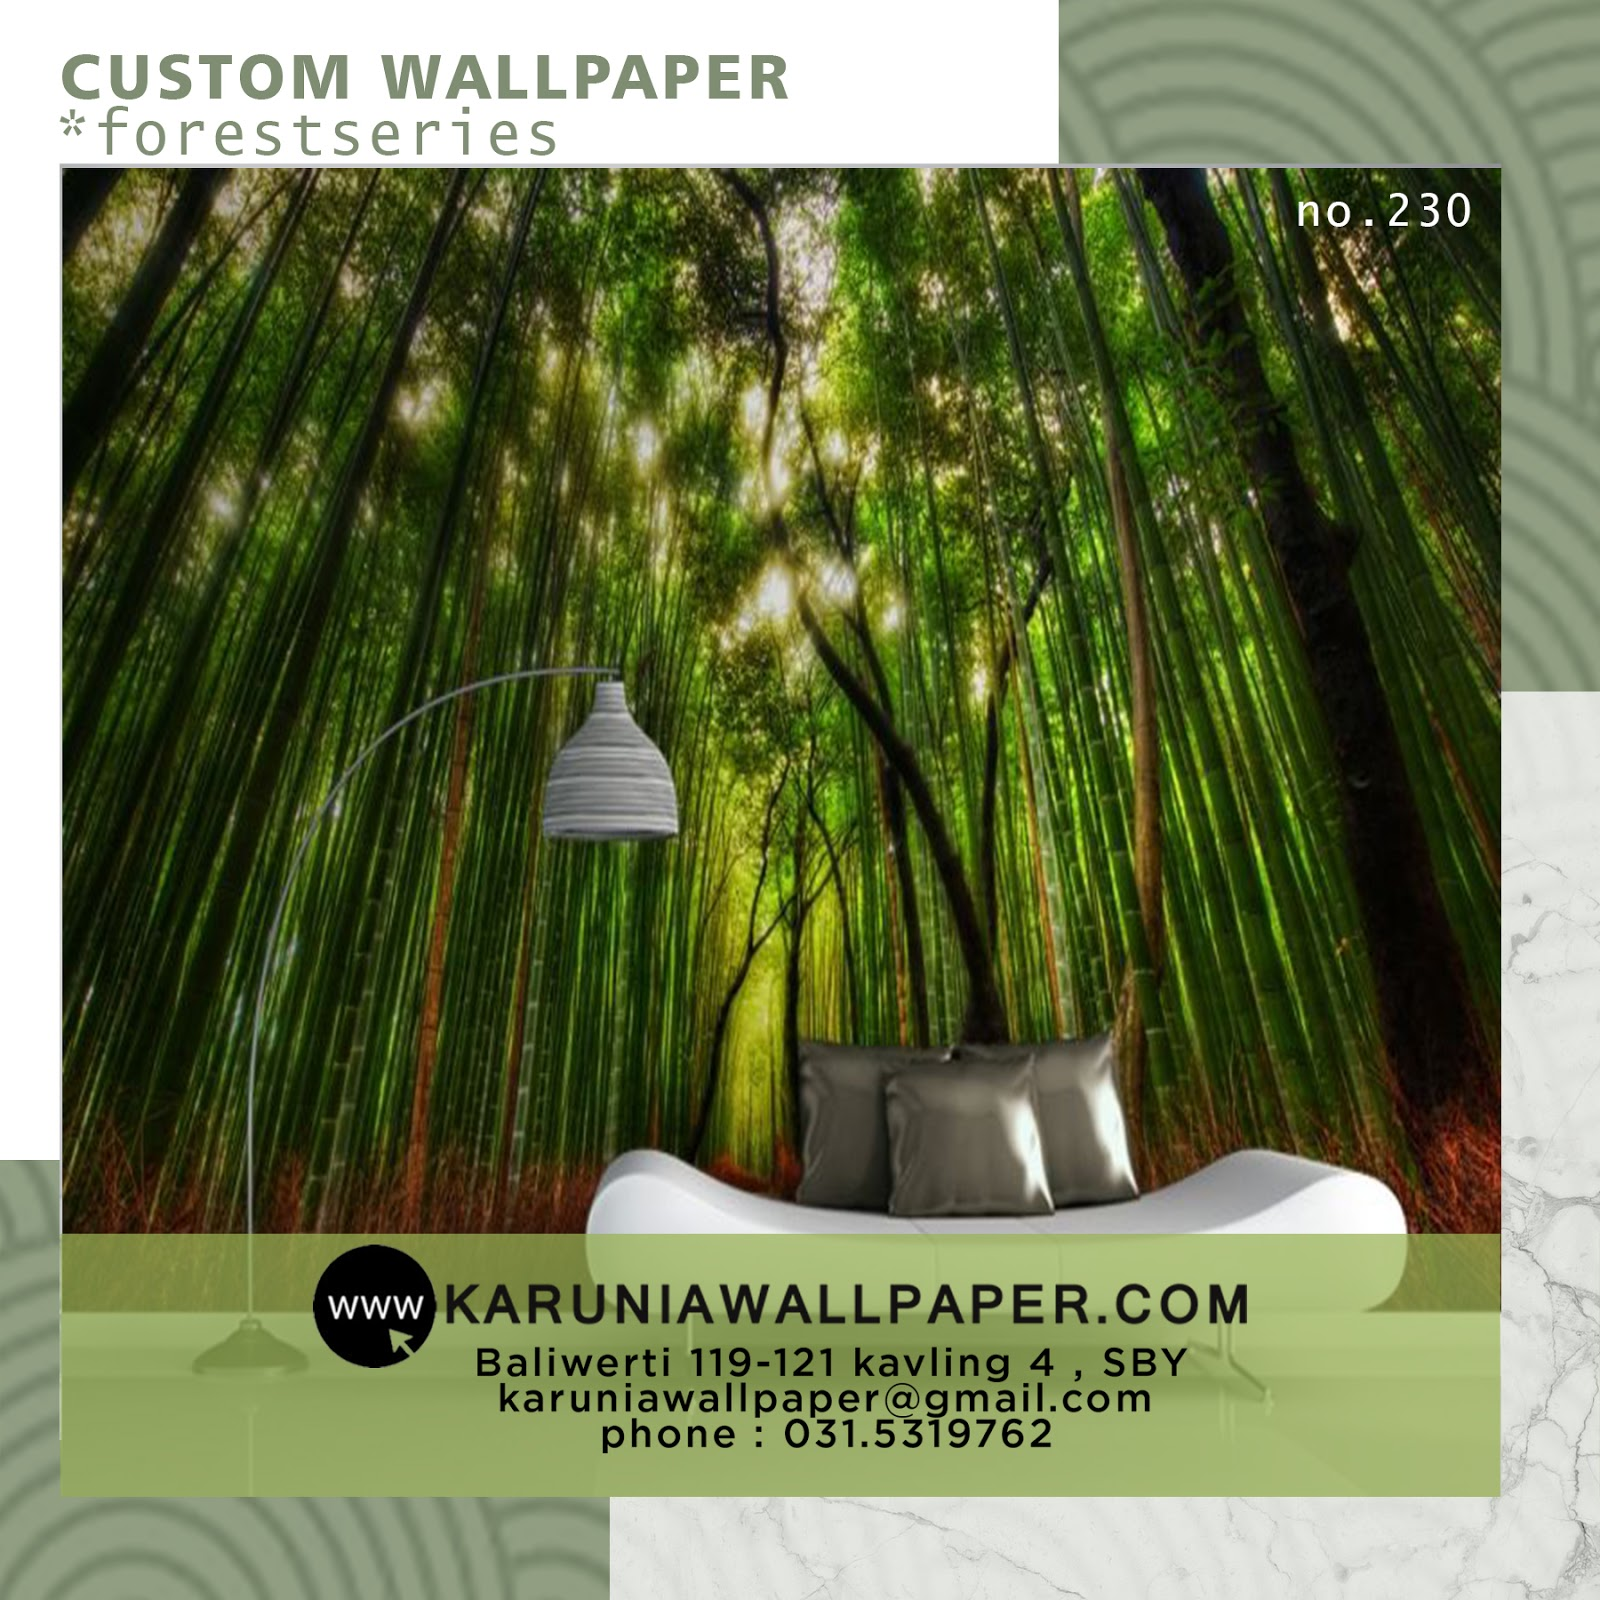 jual wallpaper custom bambu